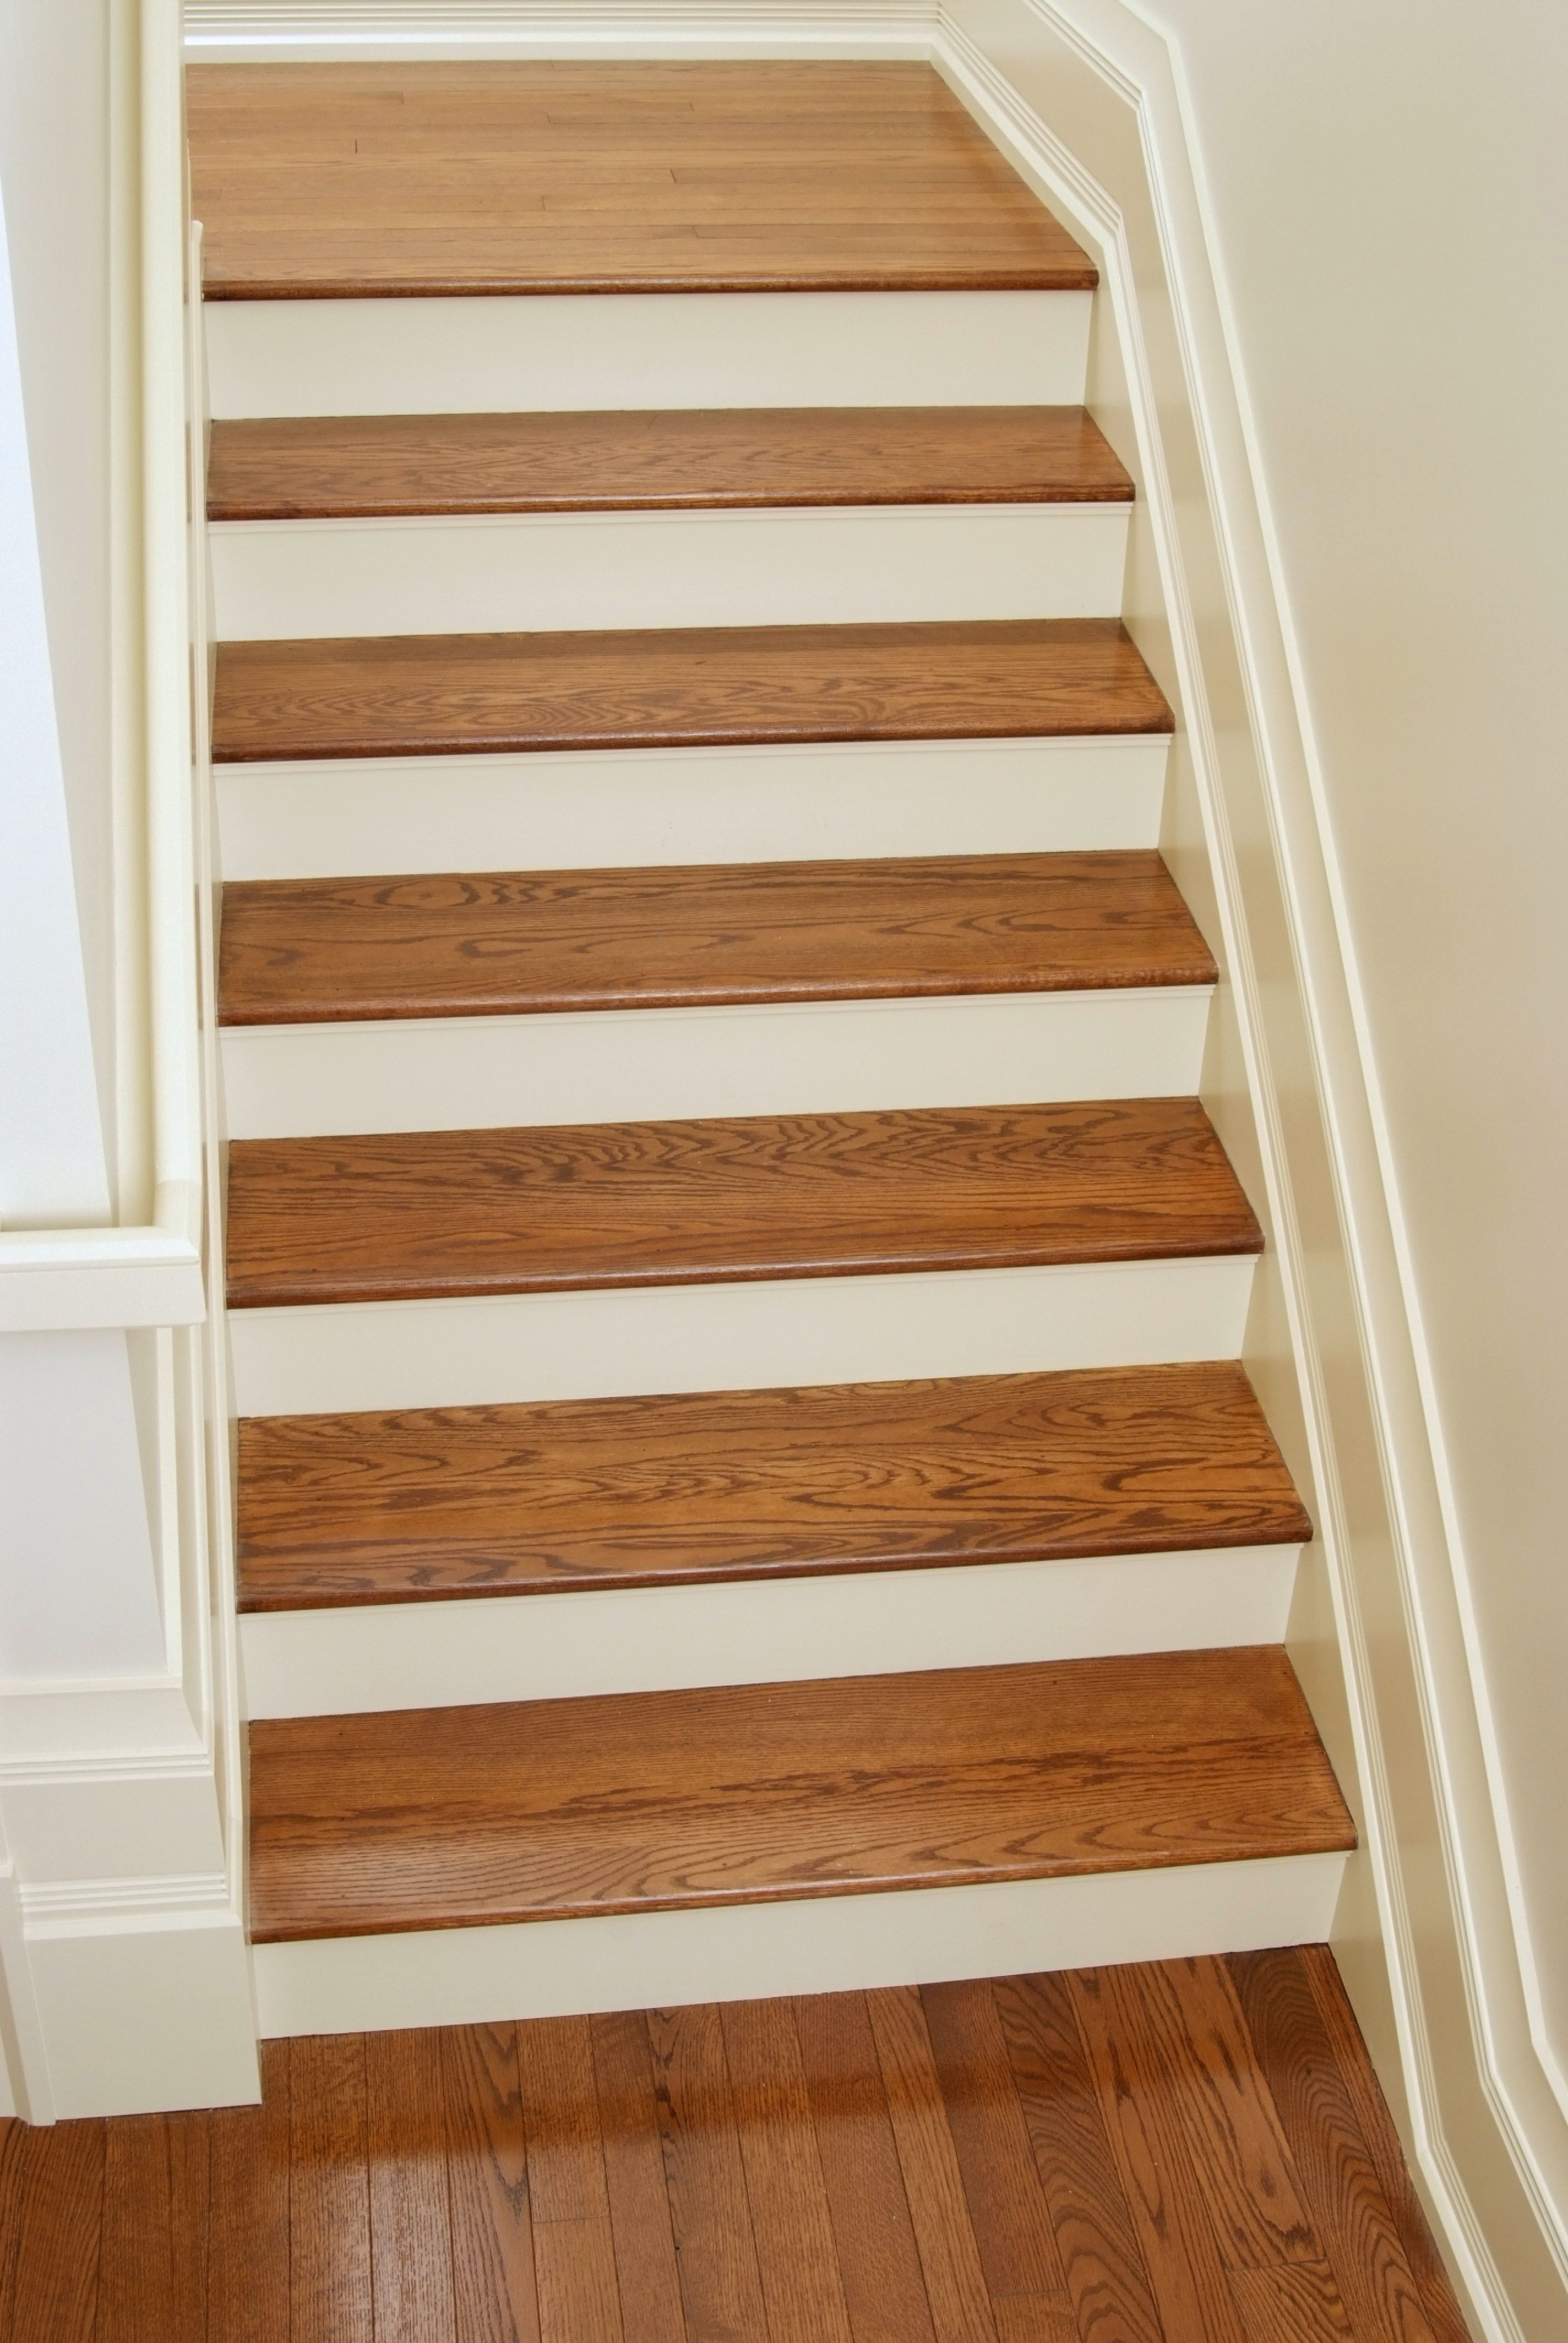 White Oak Stair Treads Wood Stair Treads Laminate Stairs Oak | Installing Hardwood Stair Treads | Stair Railing | Wood Flooring | Staircase Makeover | Wooden Stairs | Carpeted Stairs